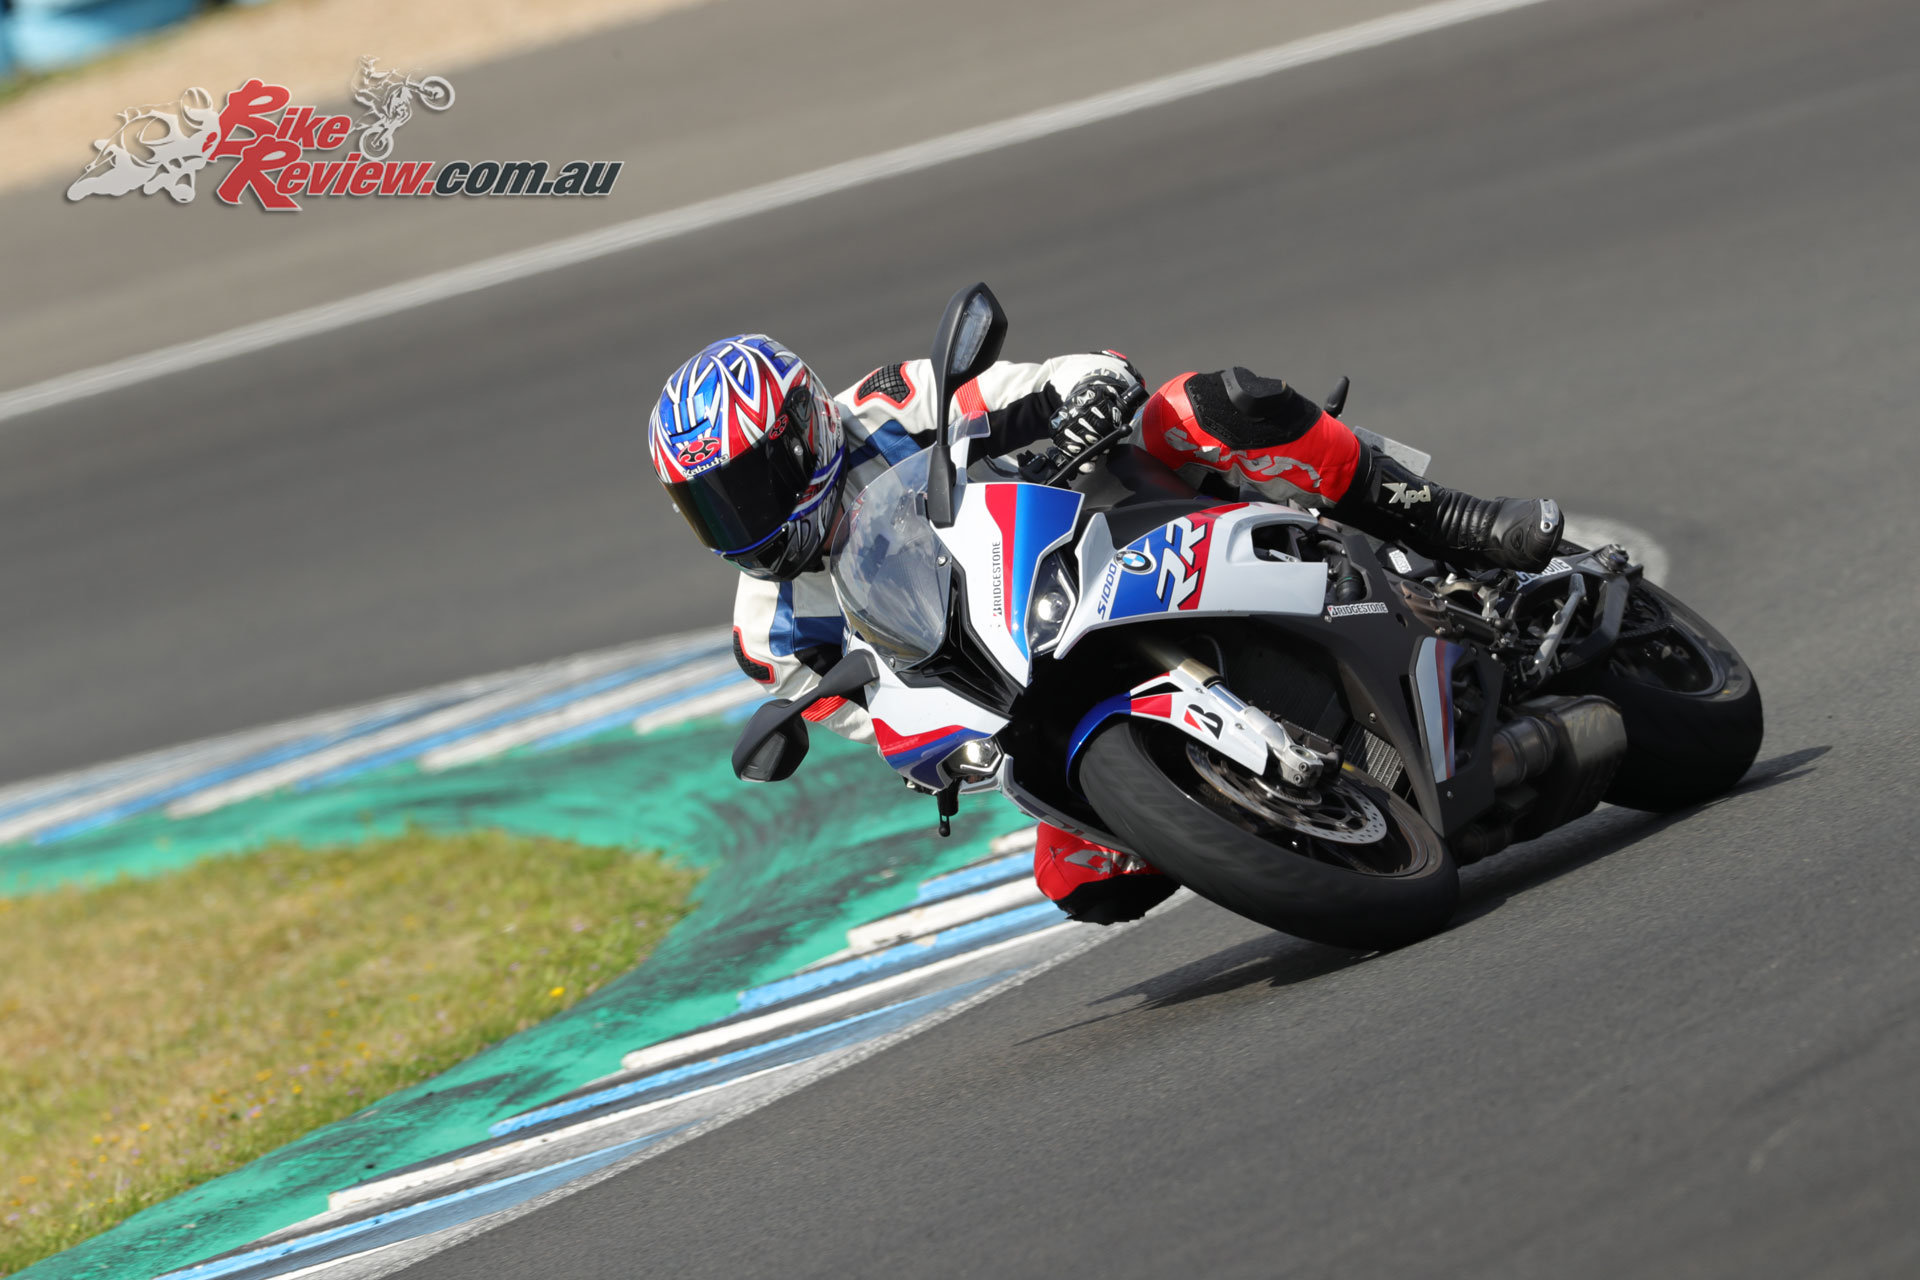 With 200hp sportsbikes on offer as conditions dried the S22s had the opportunity to shine in ideal conditions